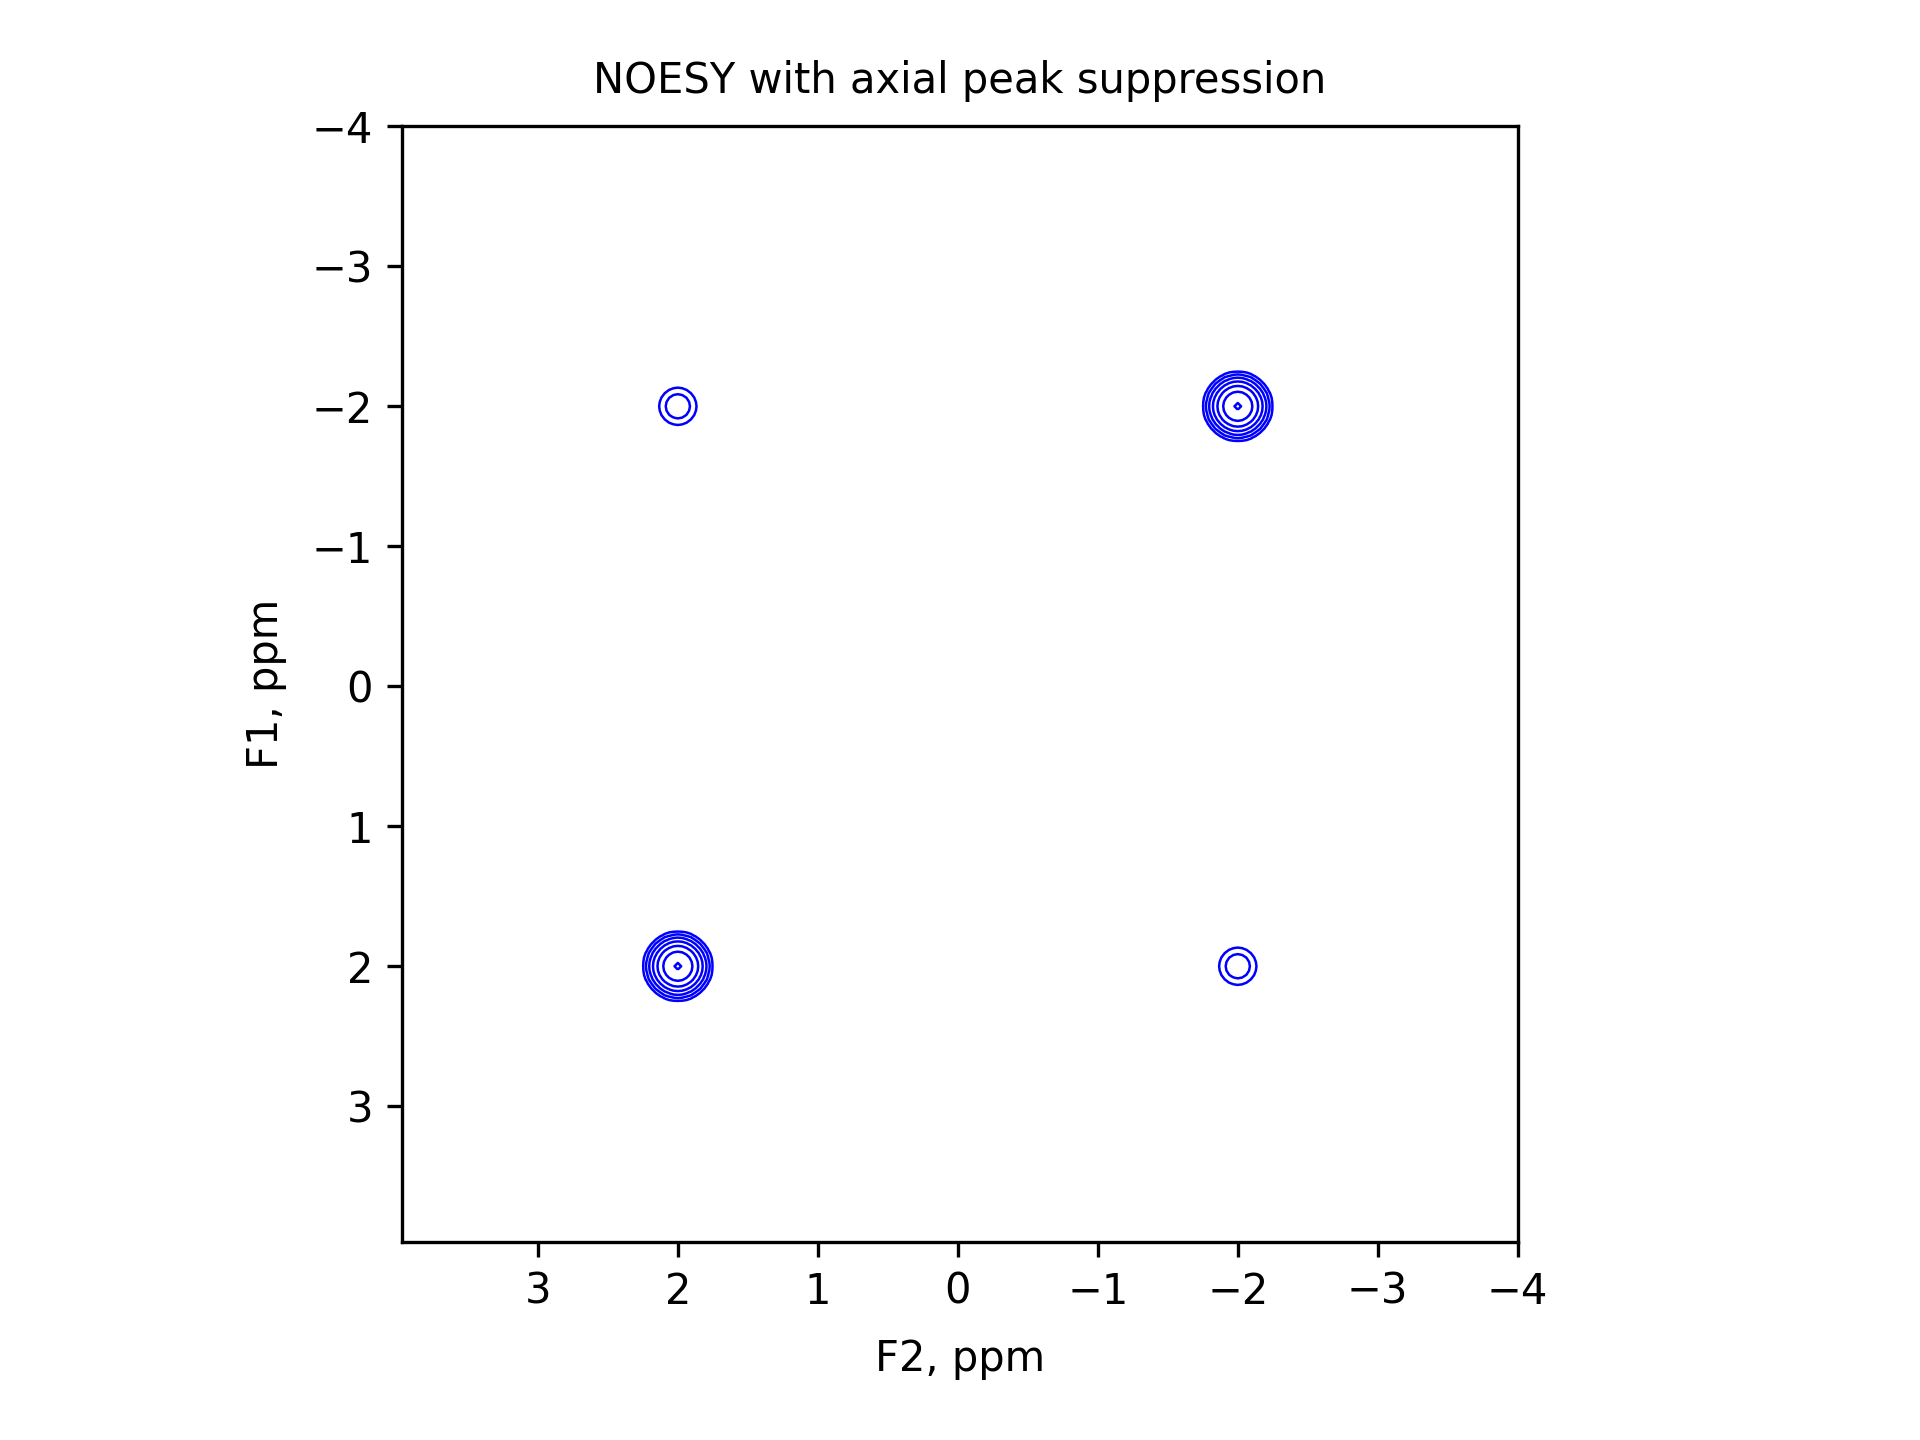 NOESY with axial peak suppression